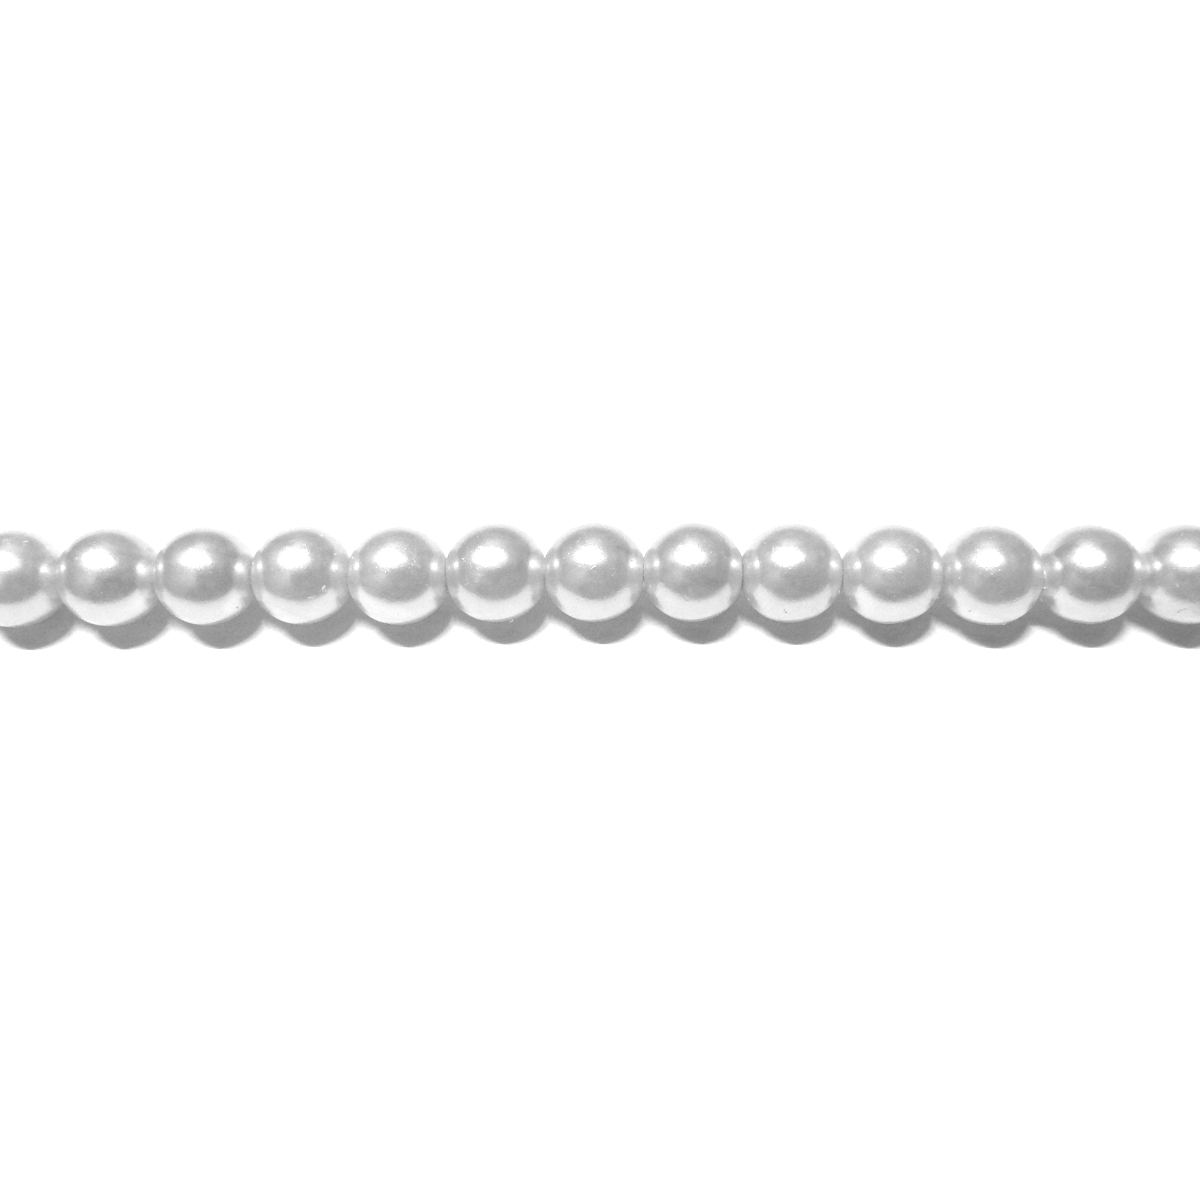 Round Glass Pearls 3mm - White Color